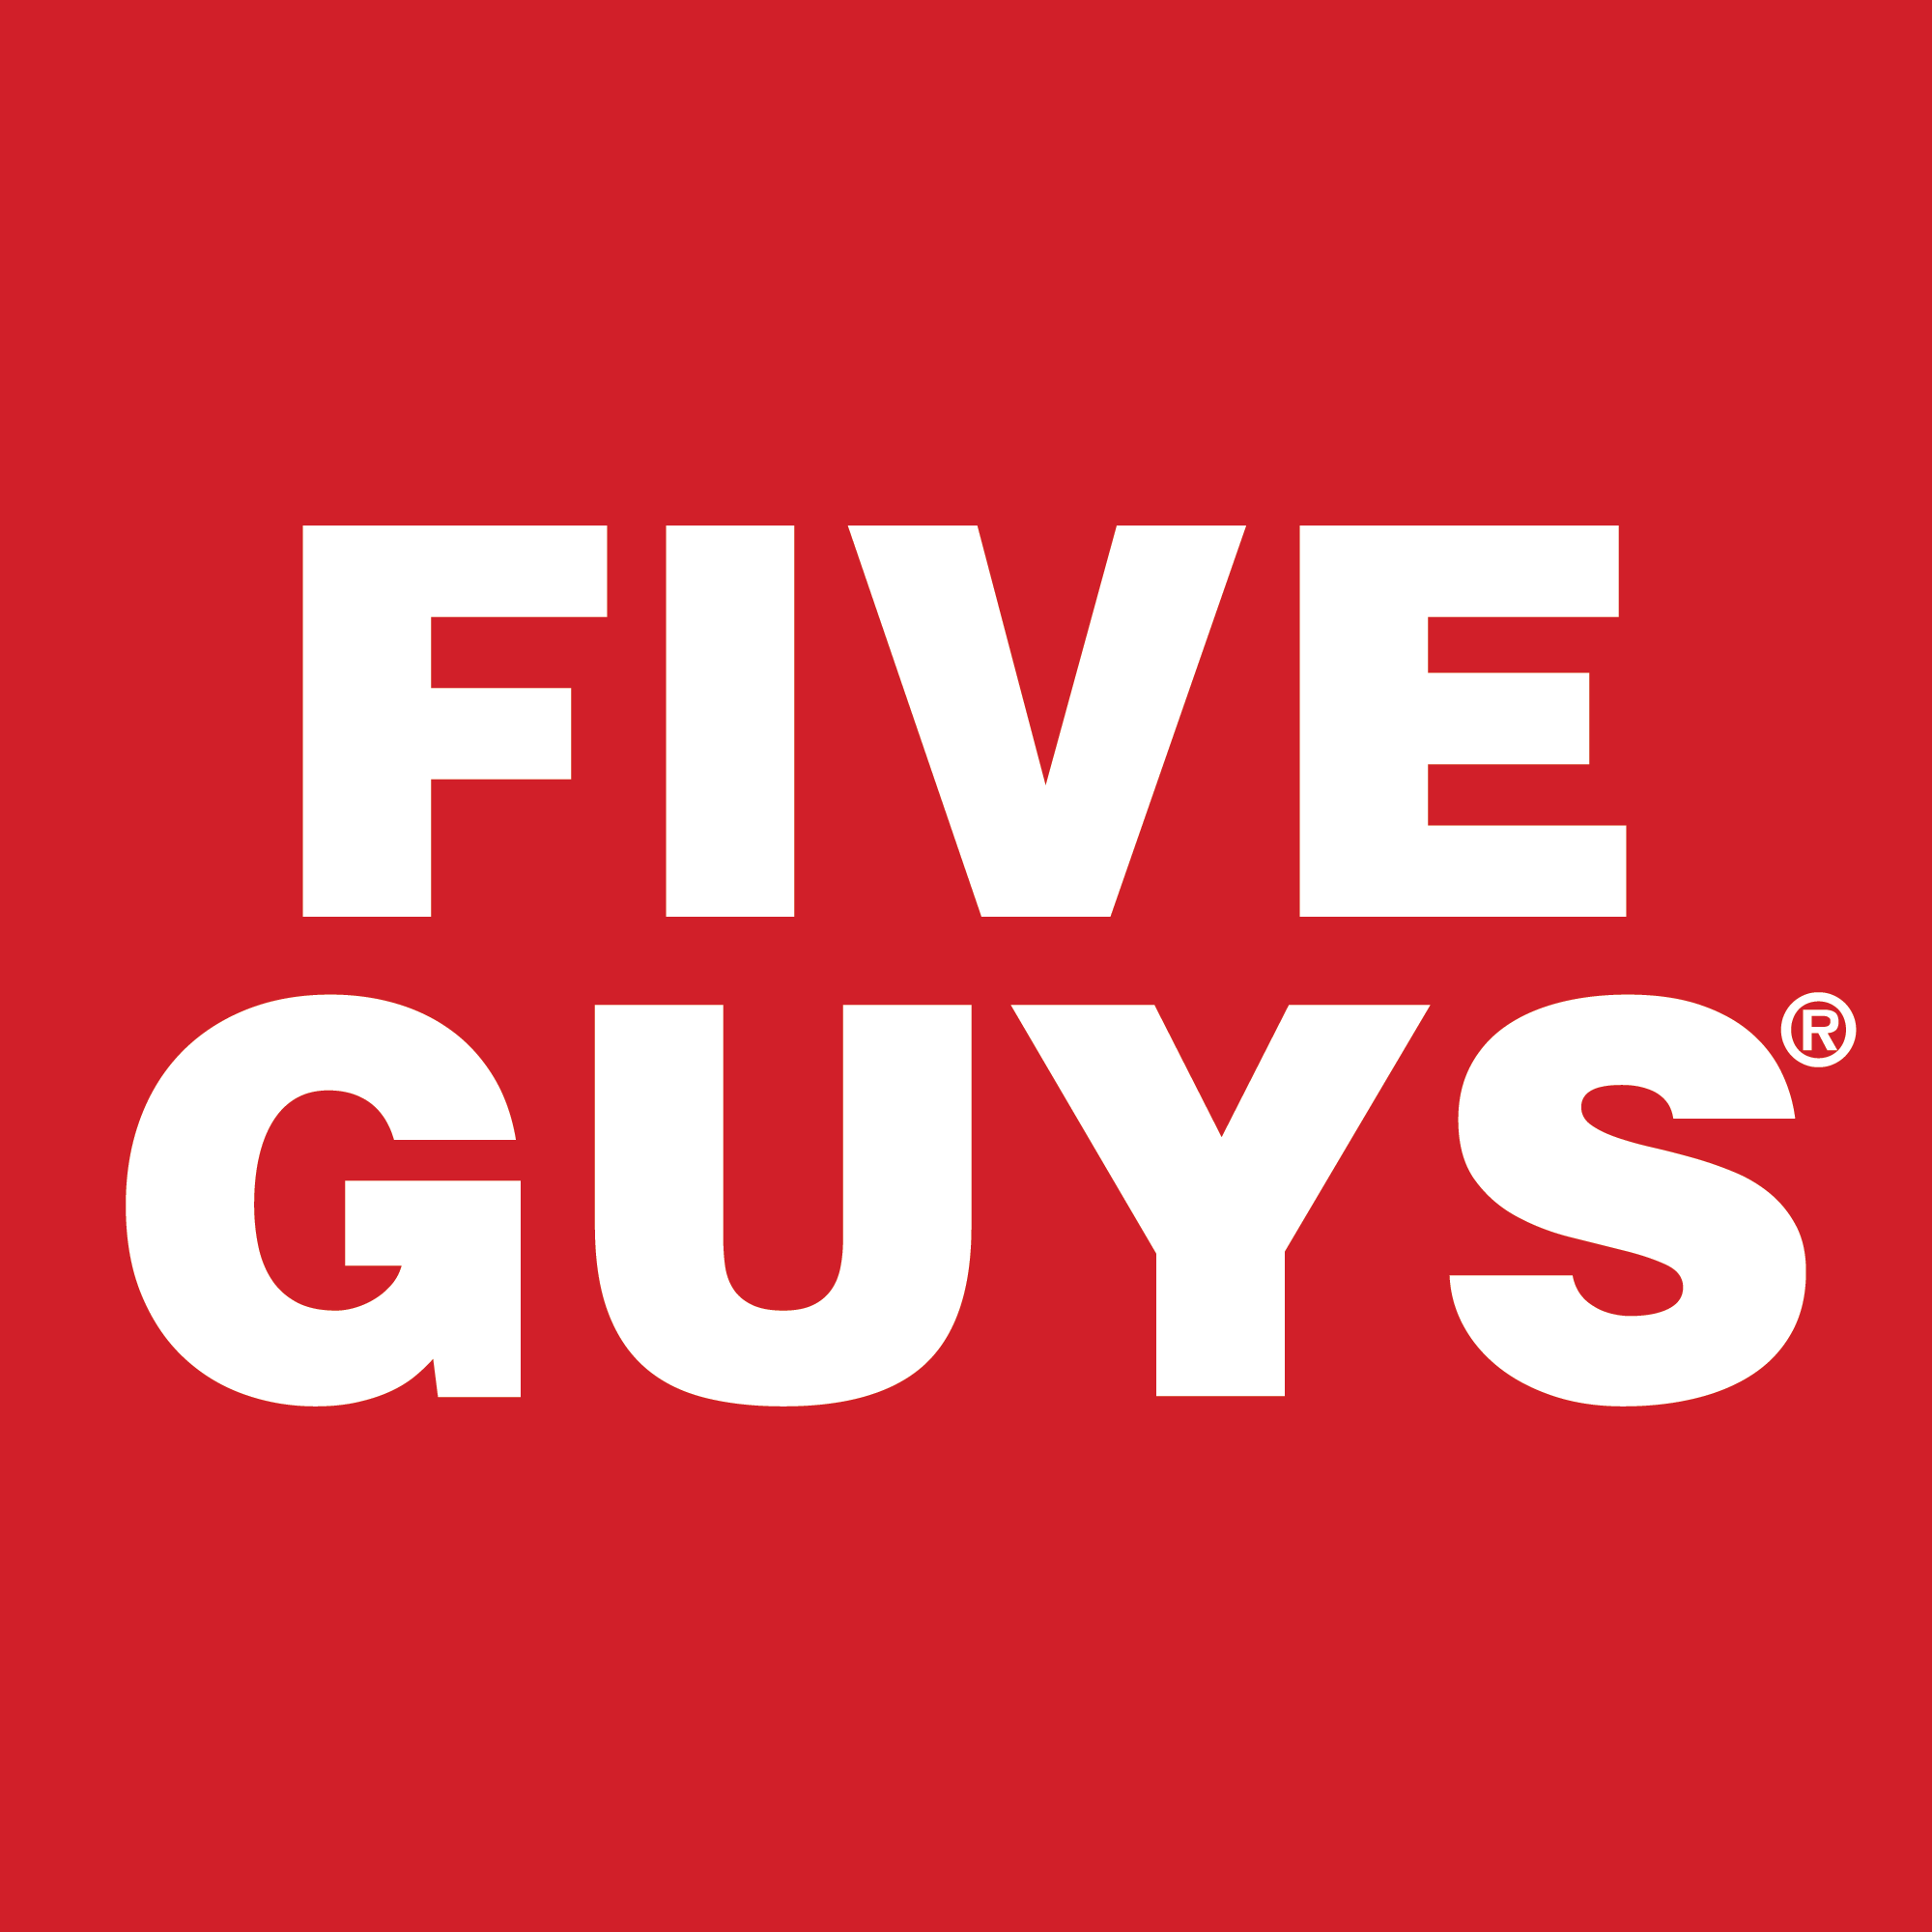 Five Guys - American Burgers, Hotdogs & More | City Walk, Dubai, UAE